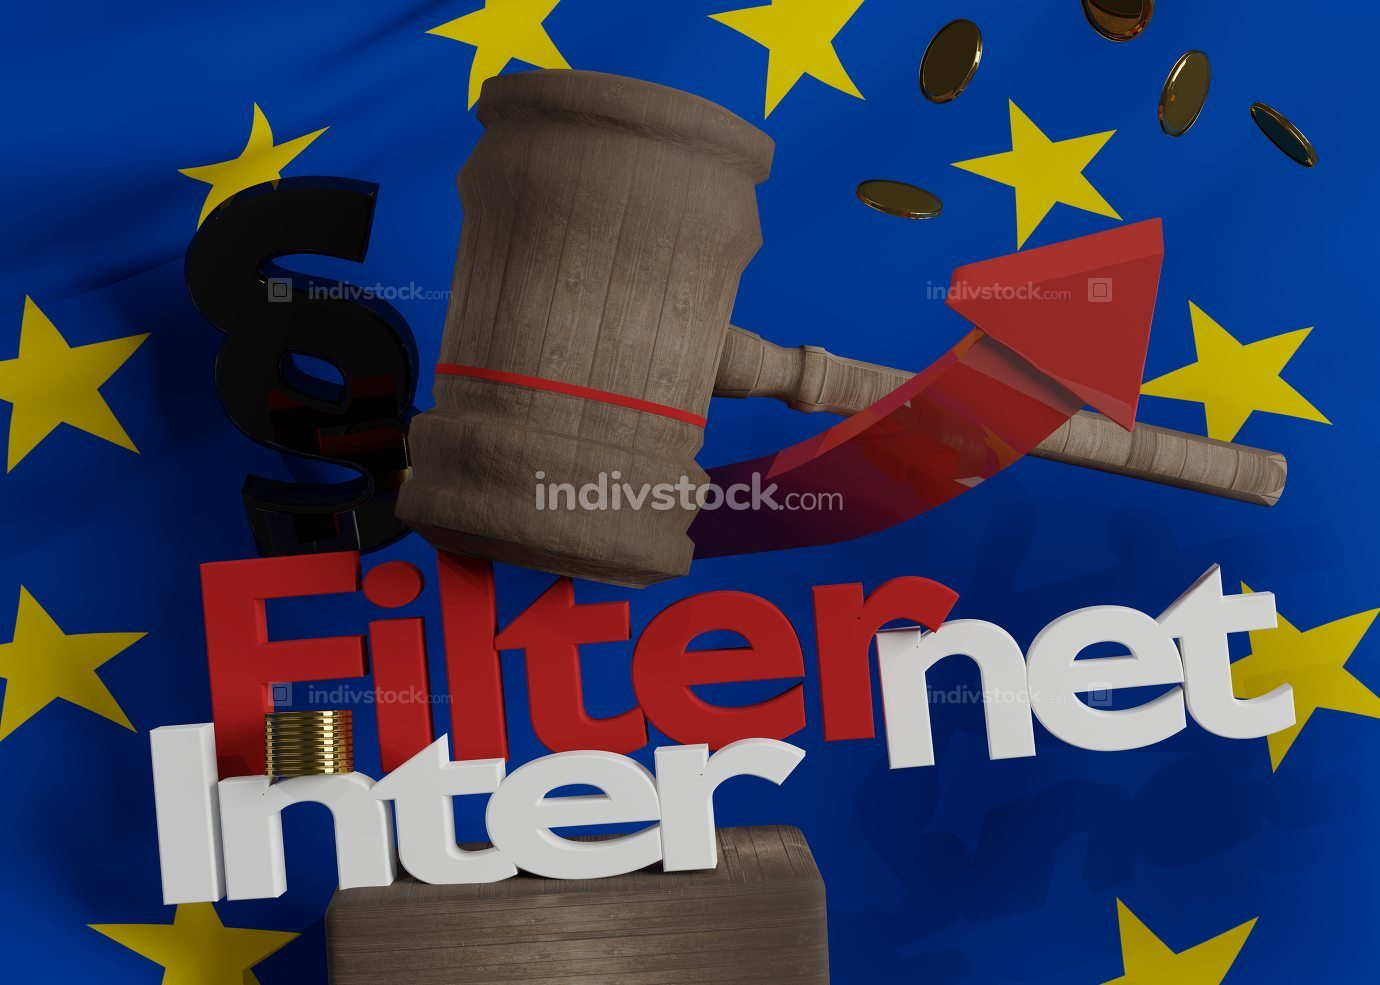 FIlternet flag of Europe on wooden judge gavel with bold letters